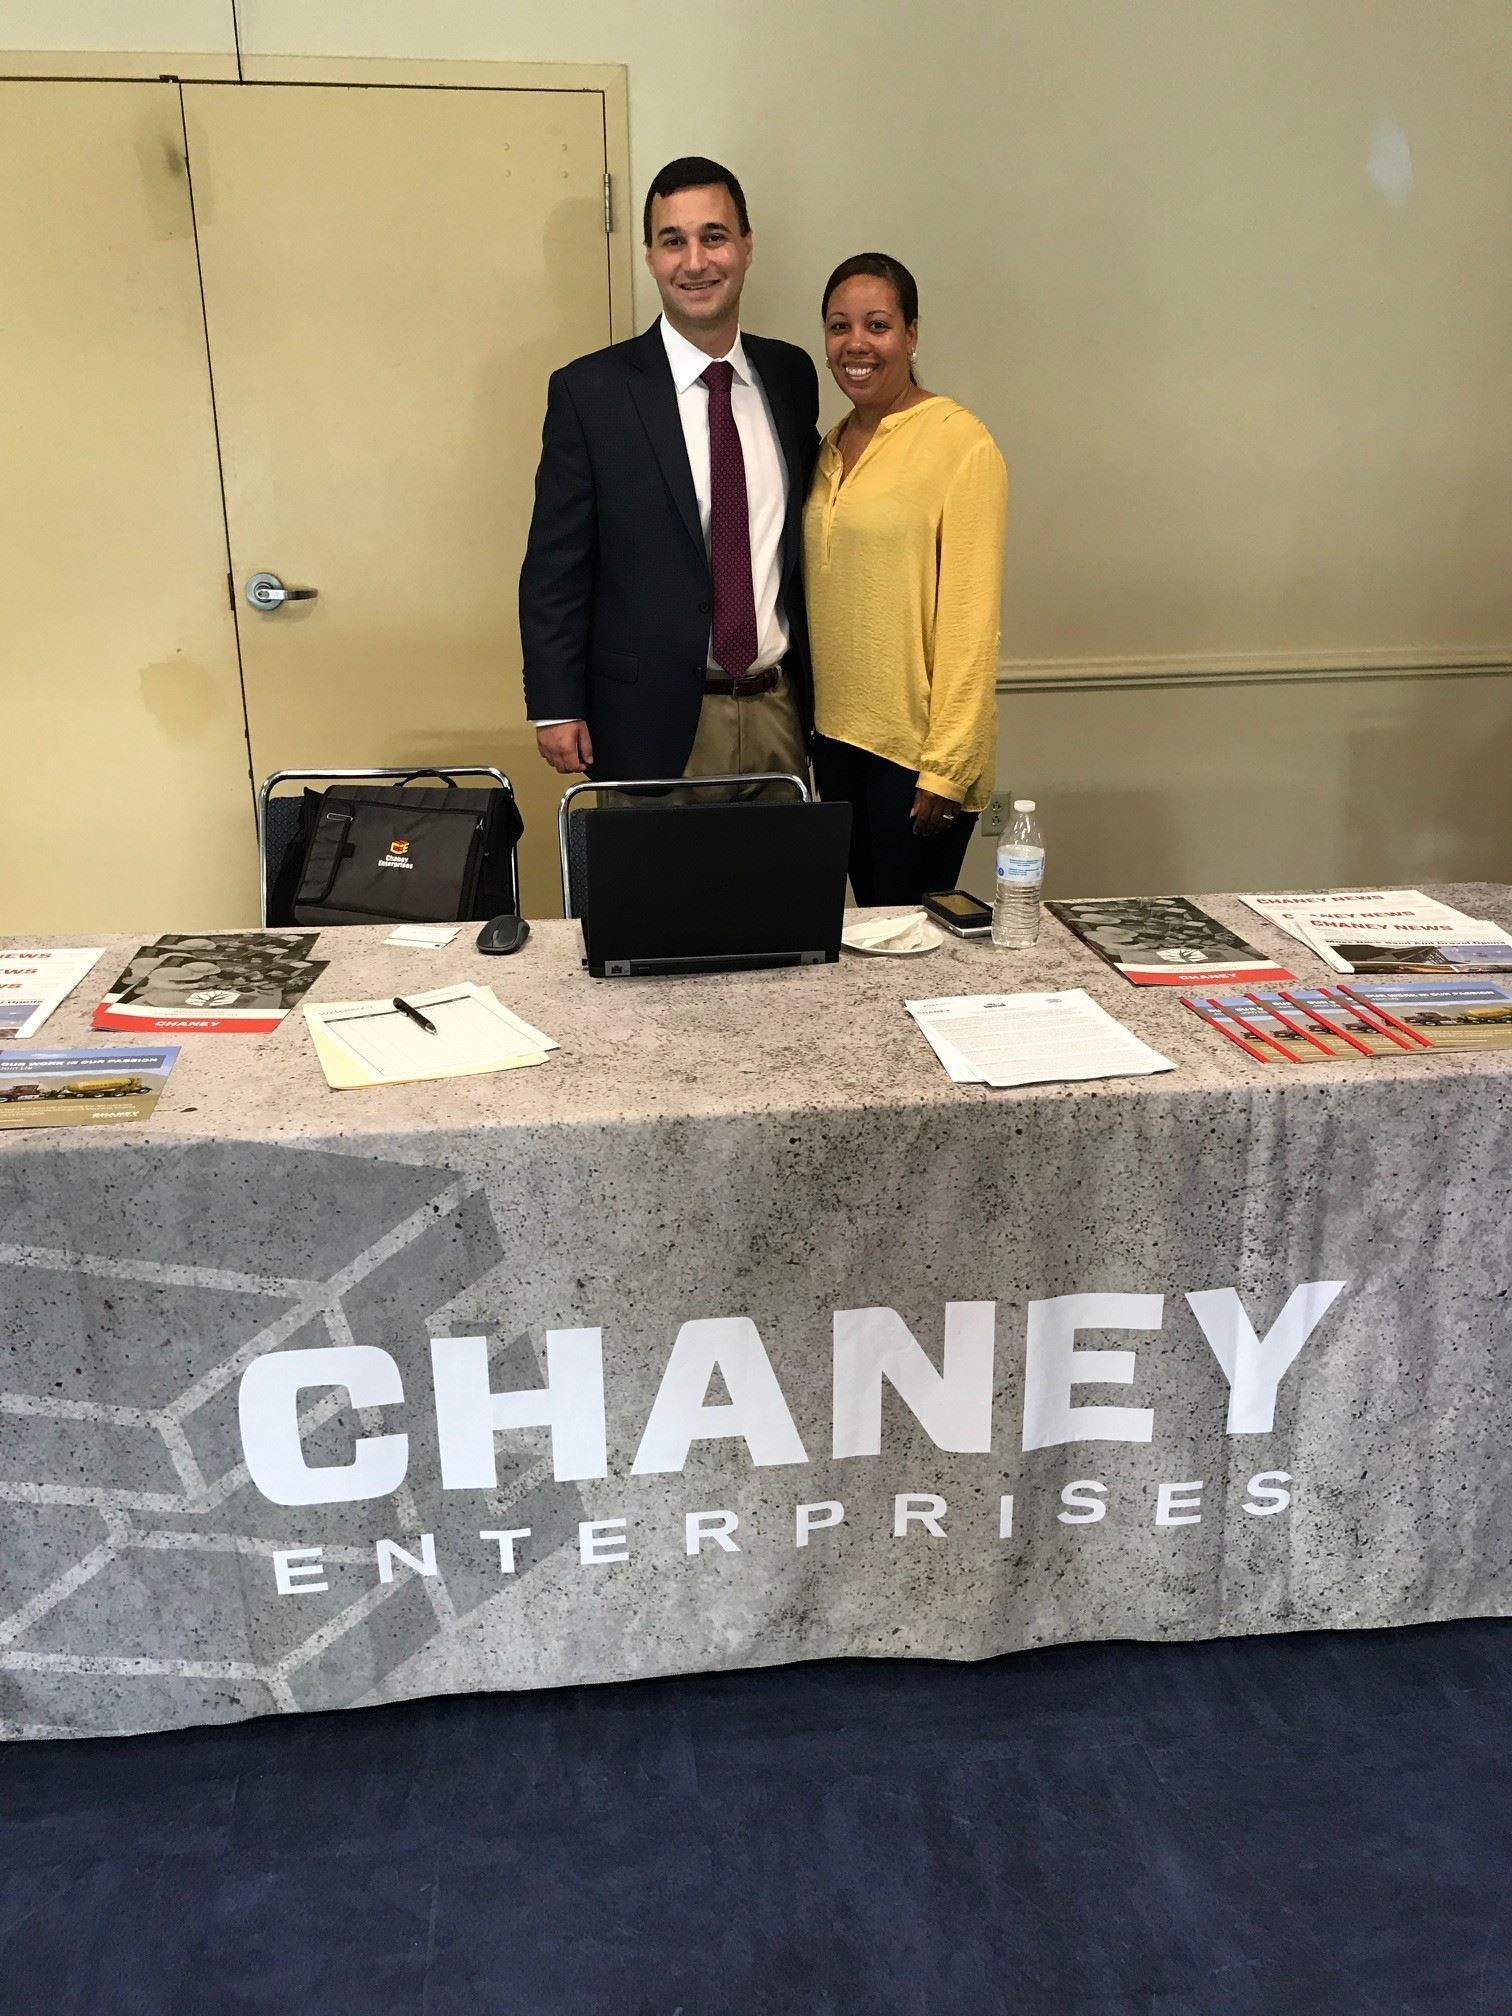 Mayor Pantelides with a representative of Chaney Enterprises